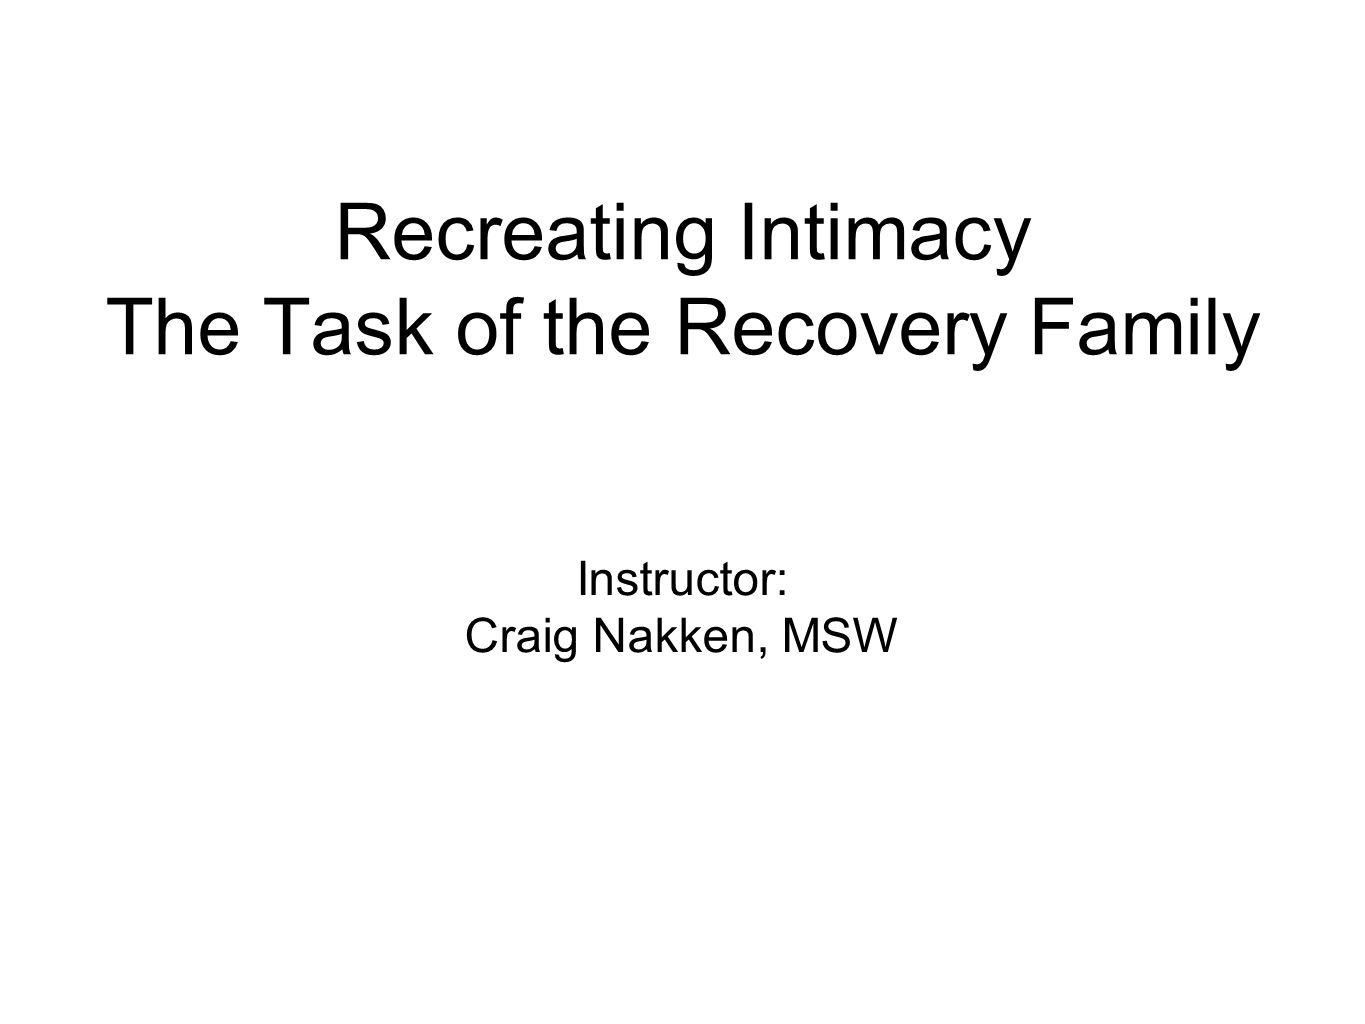 Recreating Intimacy The Task of the Recovery Family Instructor: Craig Nakken, MSW